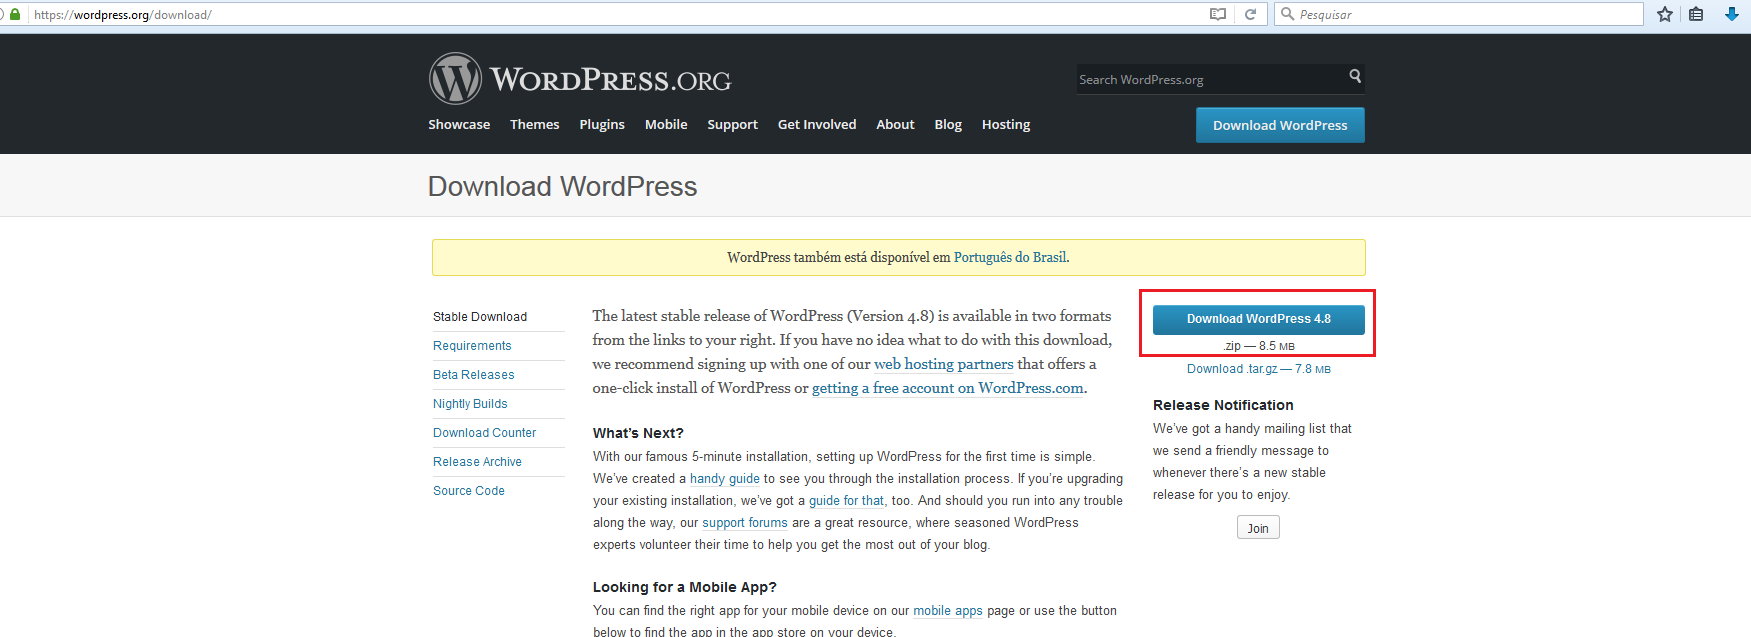 Fazendo o download do WordPress